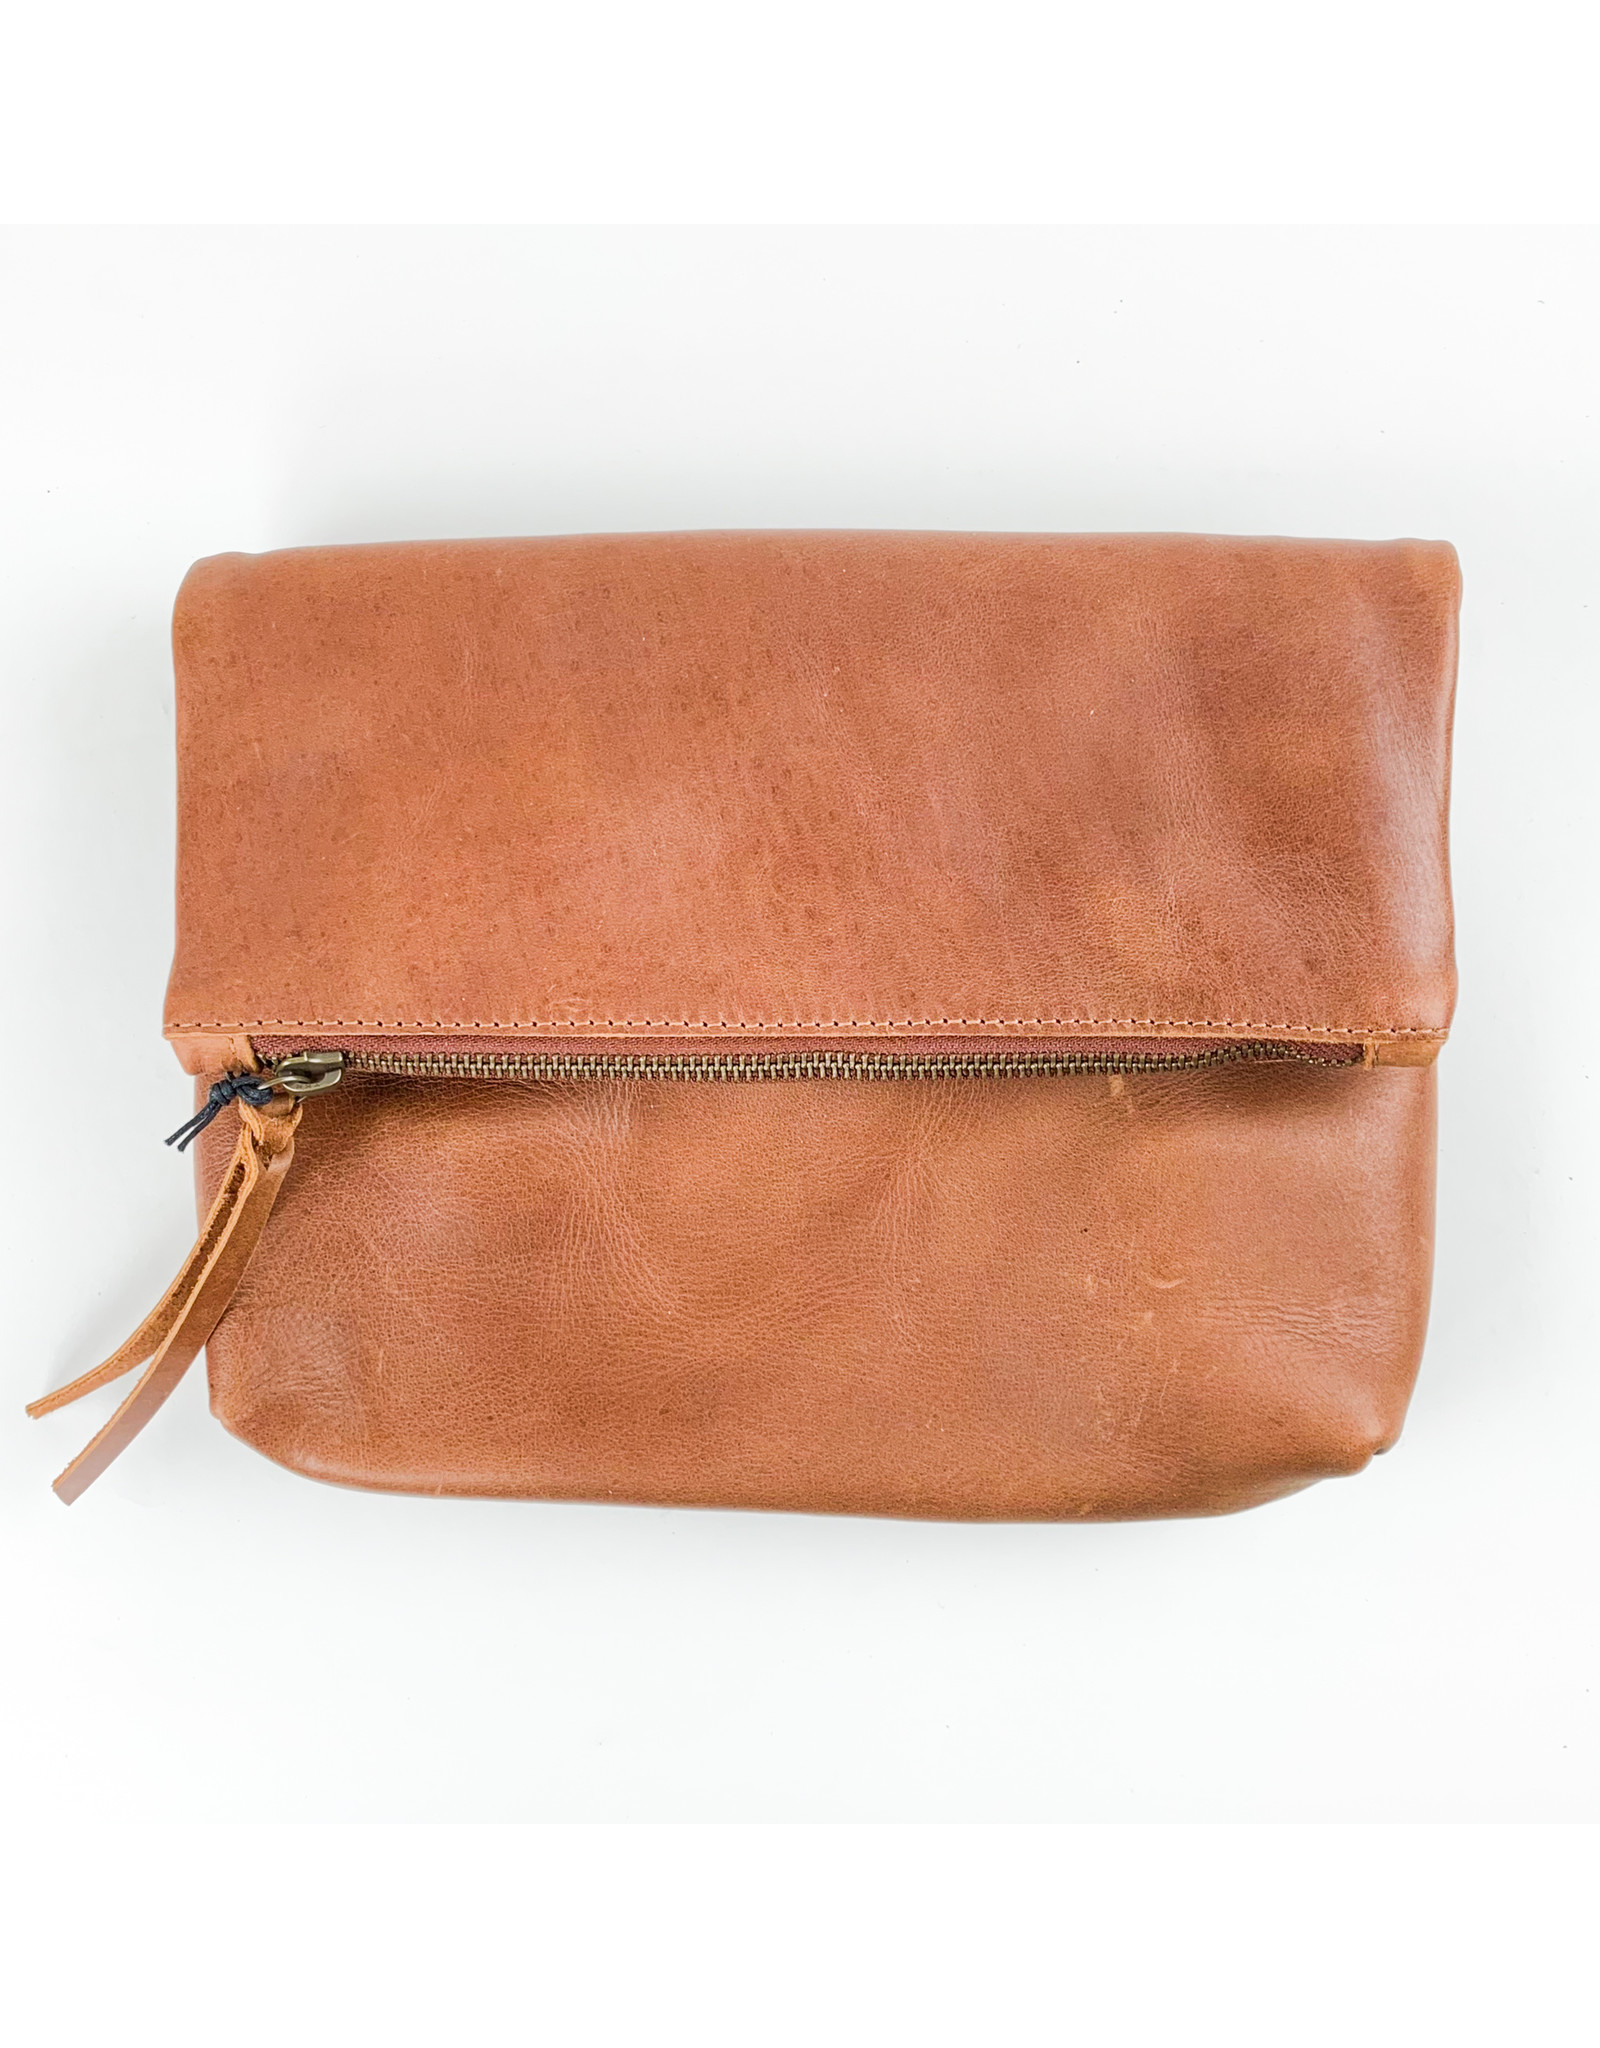 Able Emnet Foldover Crossbody - Whiskey